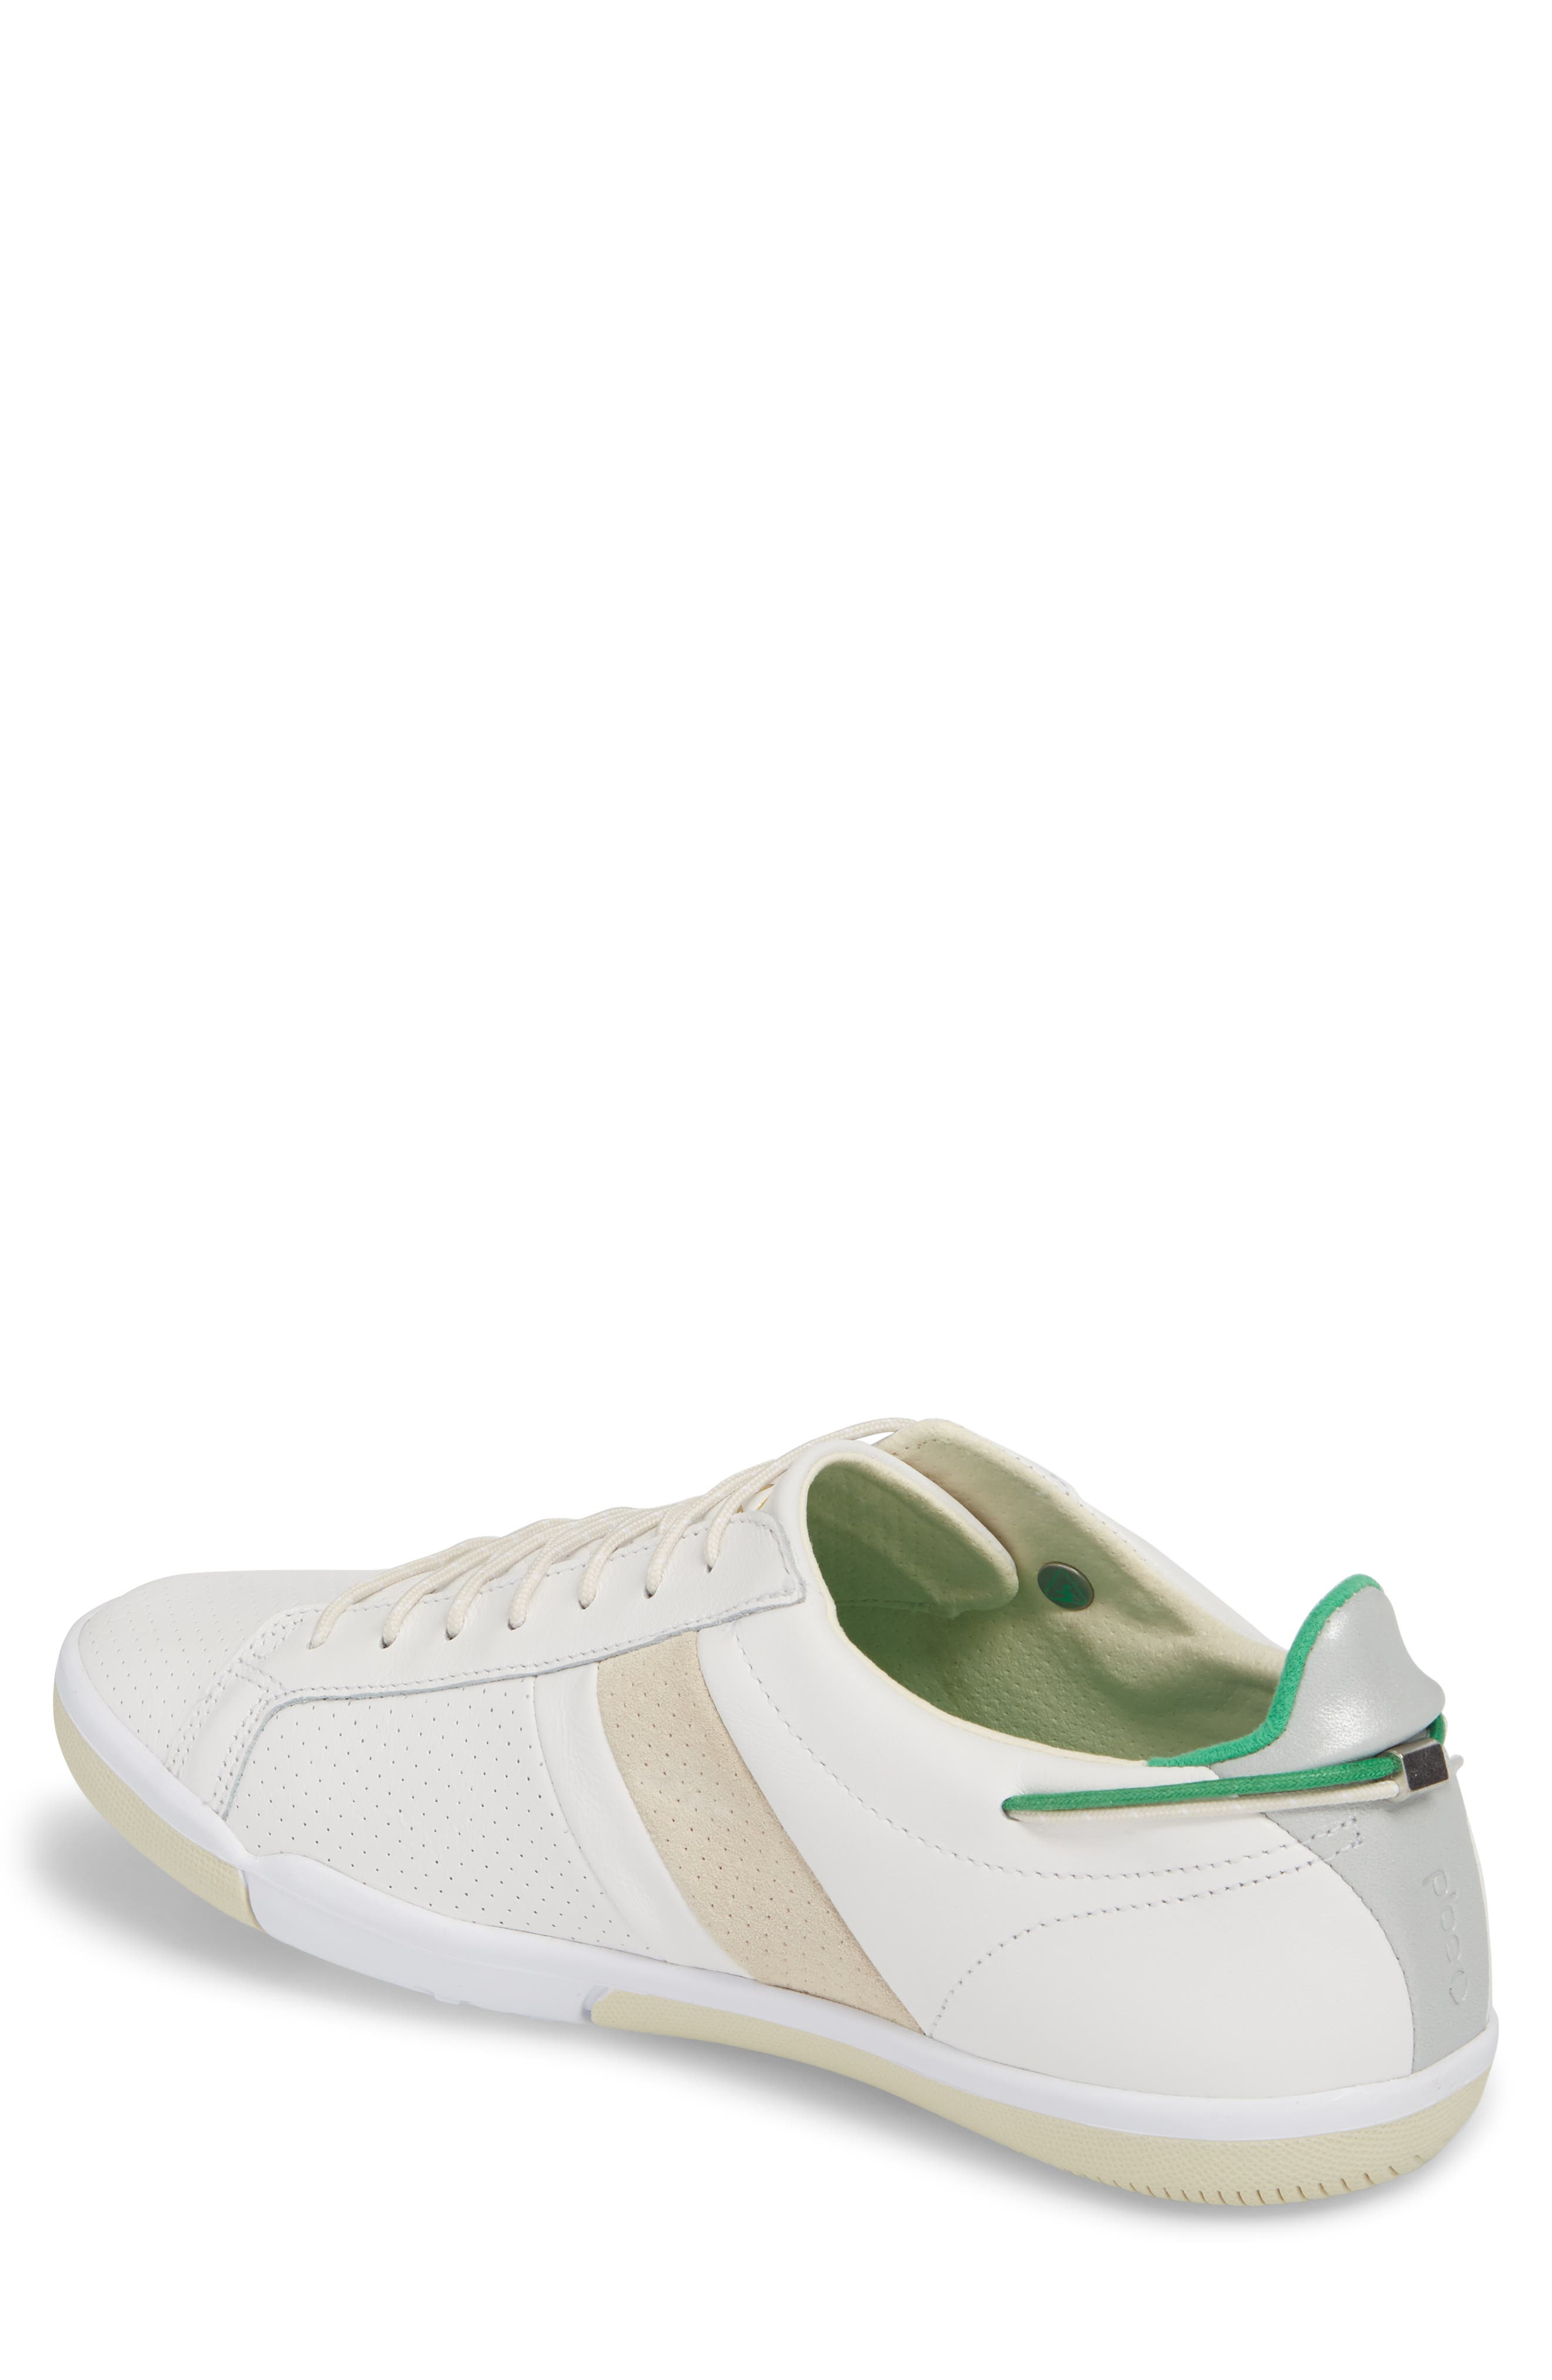 Mulberry Low Top Sneaker,                             Alternate thumbnail 2, color,                             White